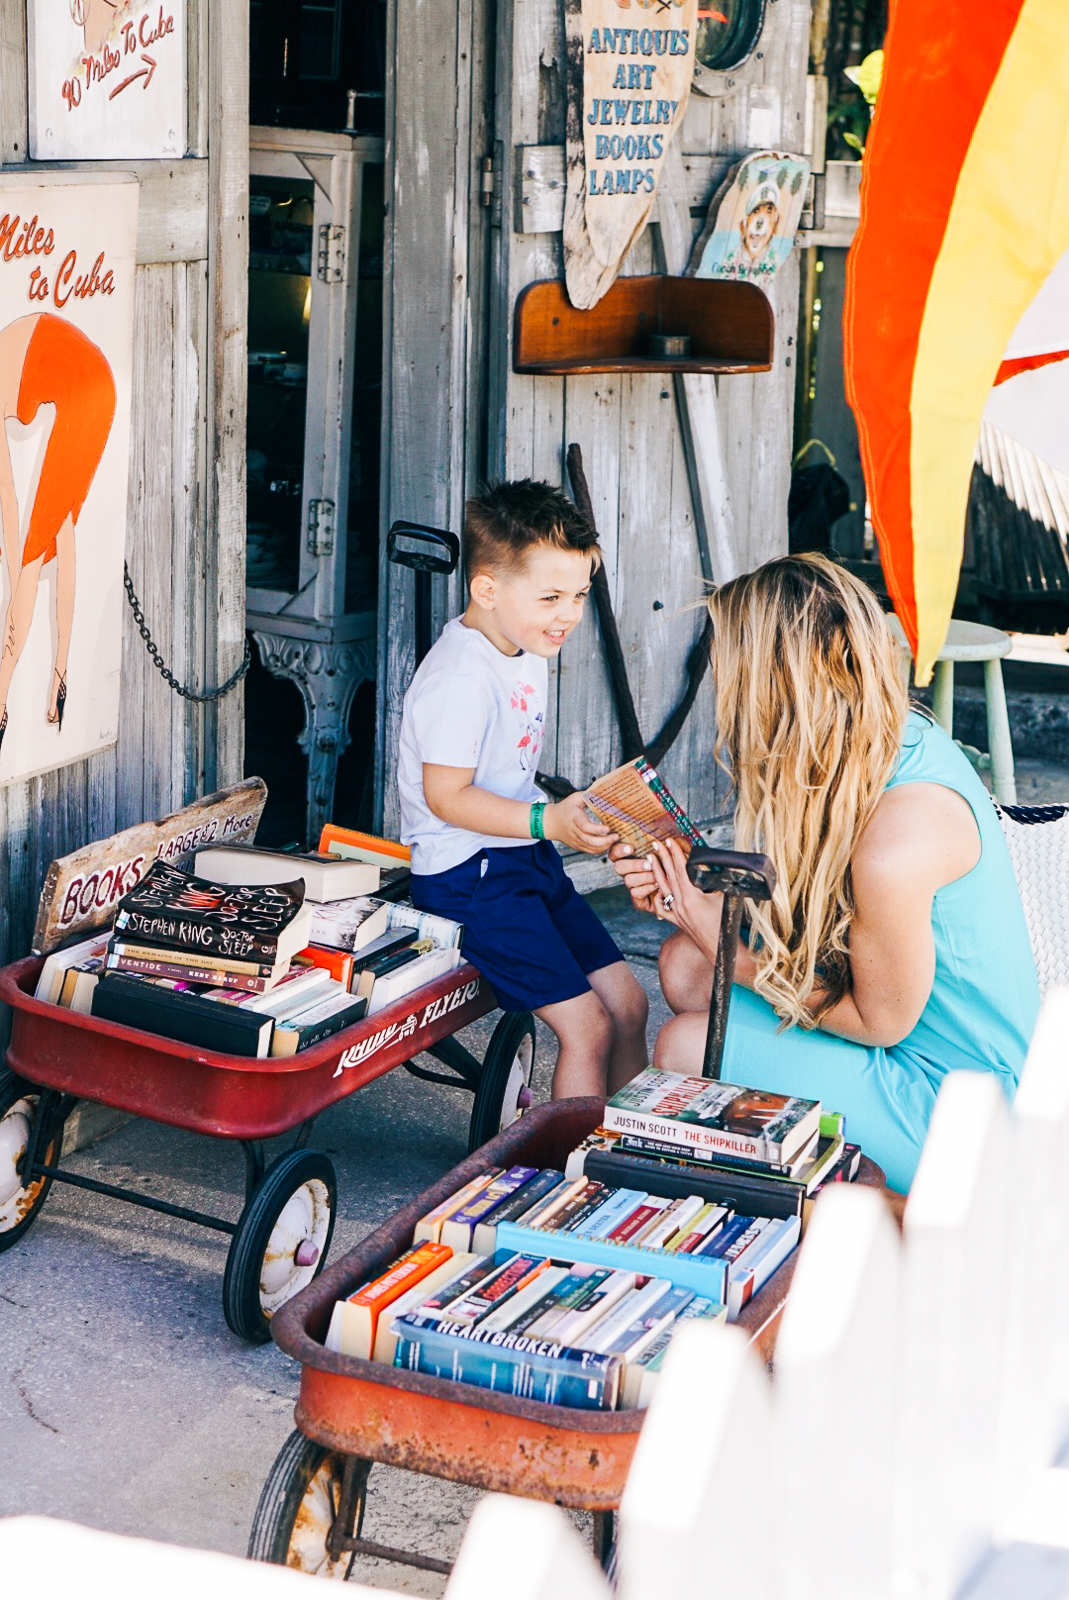 Key West - Things to Do in Key West - Misty Nelson, family travel blogger @frostedevents bookstore